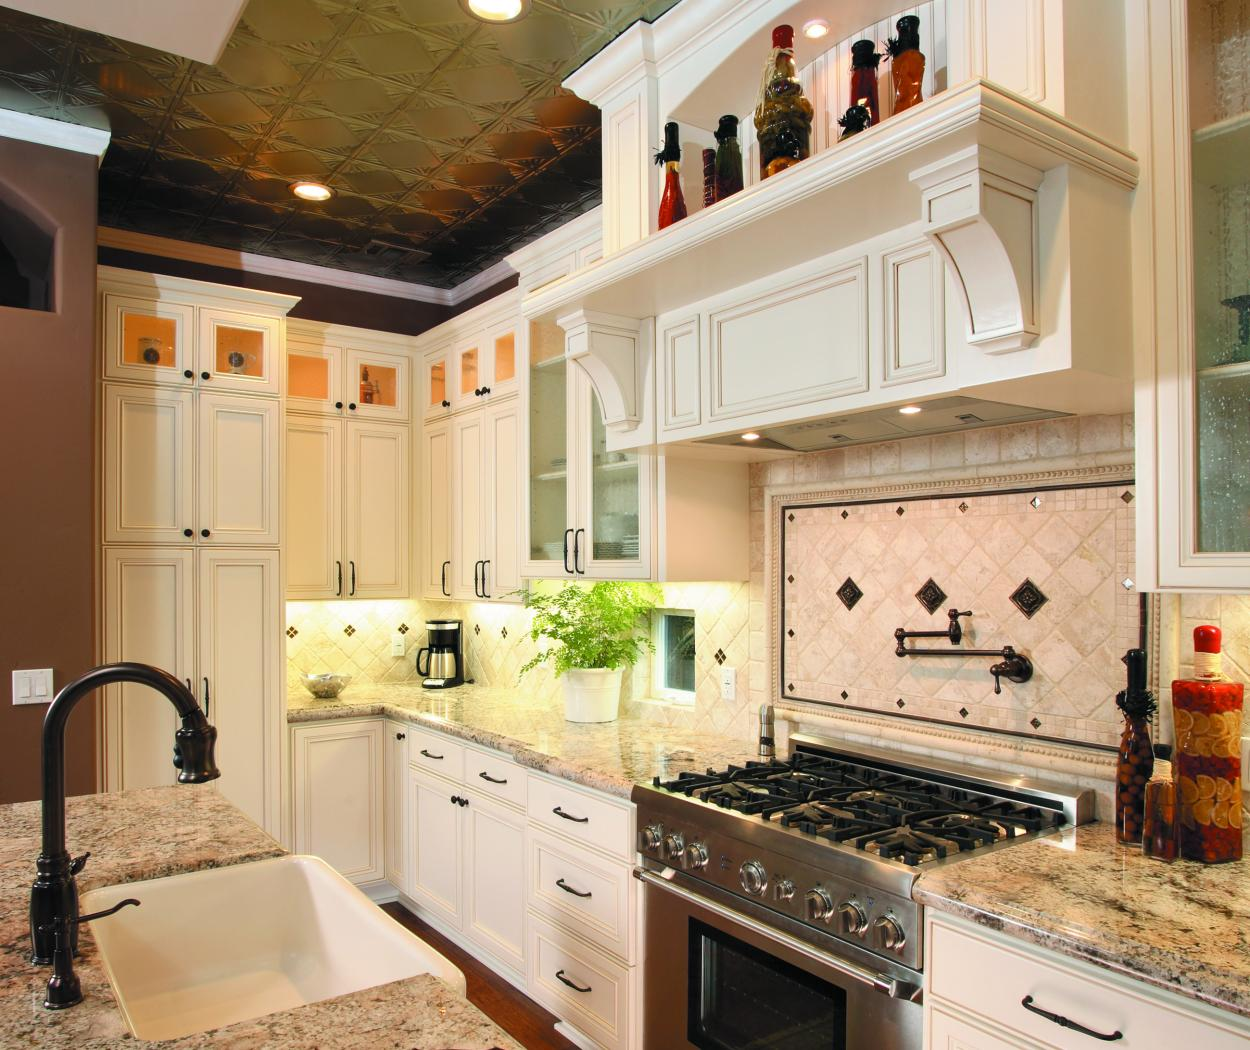 Transitional White Kitchen with Beautiful Glass Doors, Granite Countertops and Stainless Steel Appliances